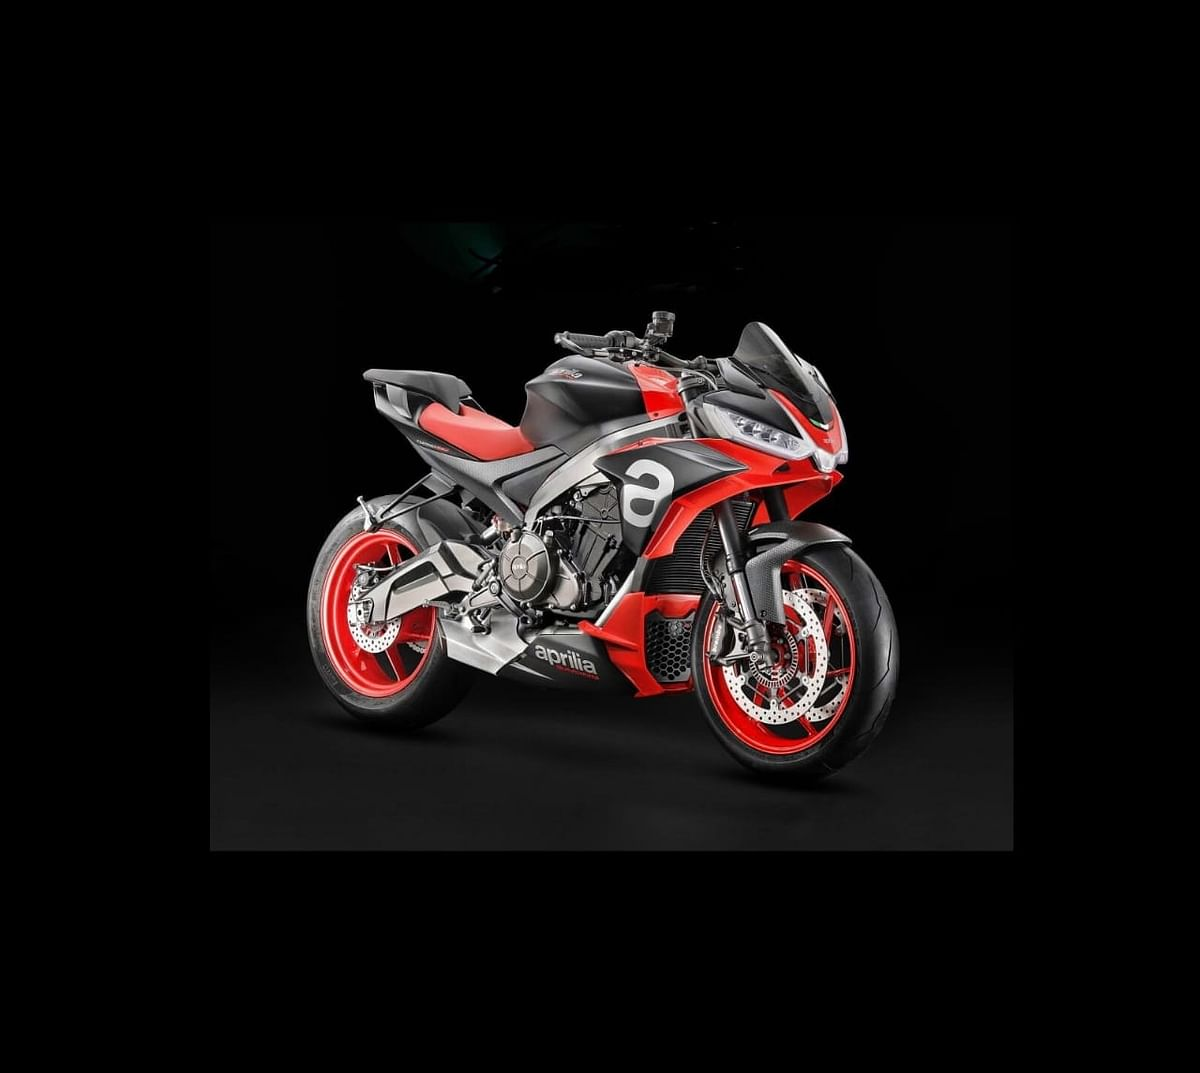 Aprilia registers designs for the Tuono 660